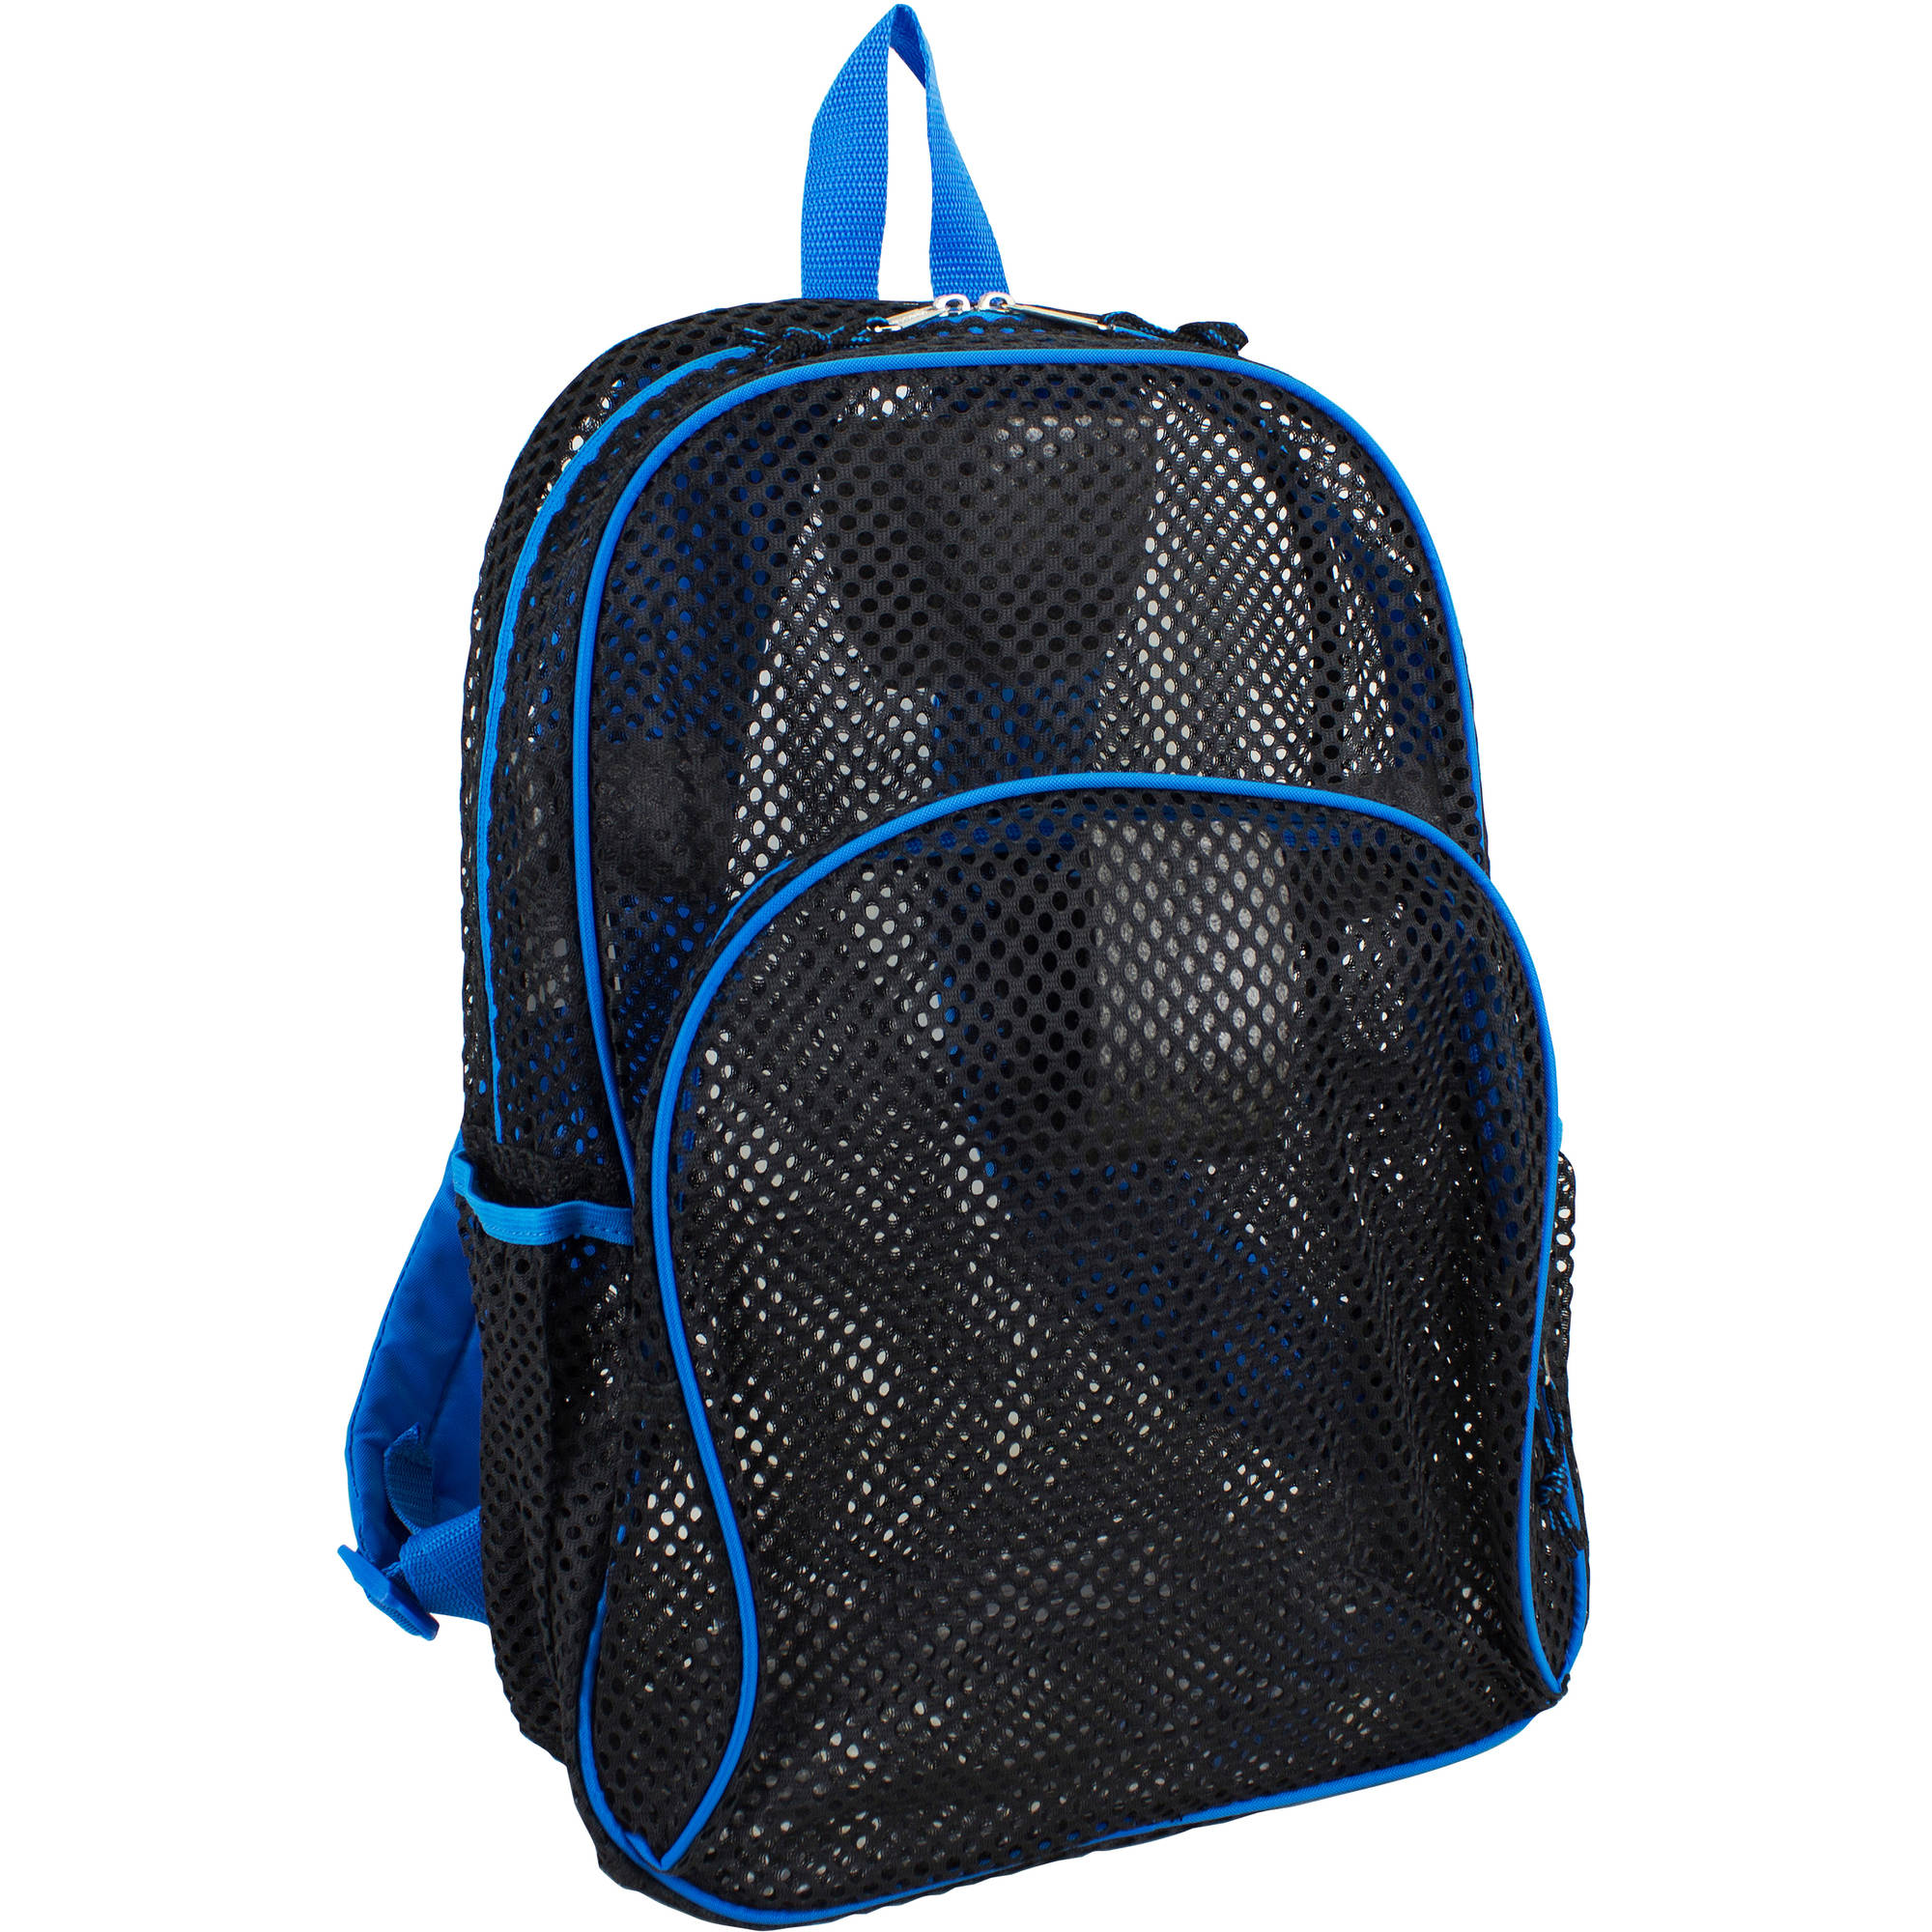 Eastsport Mesh Backpack with Contrast Trim